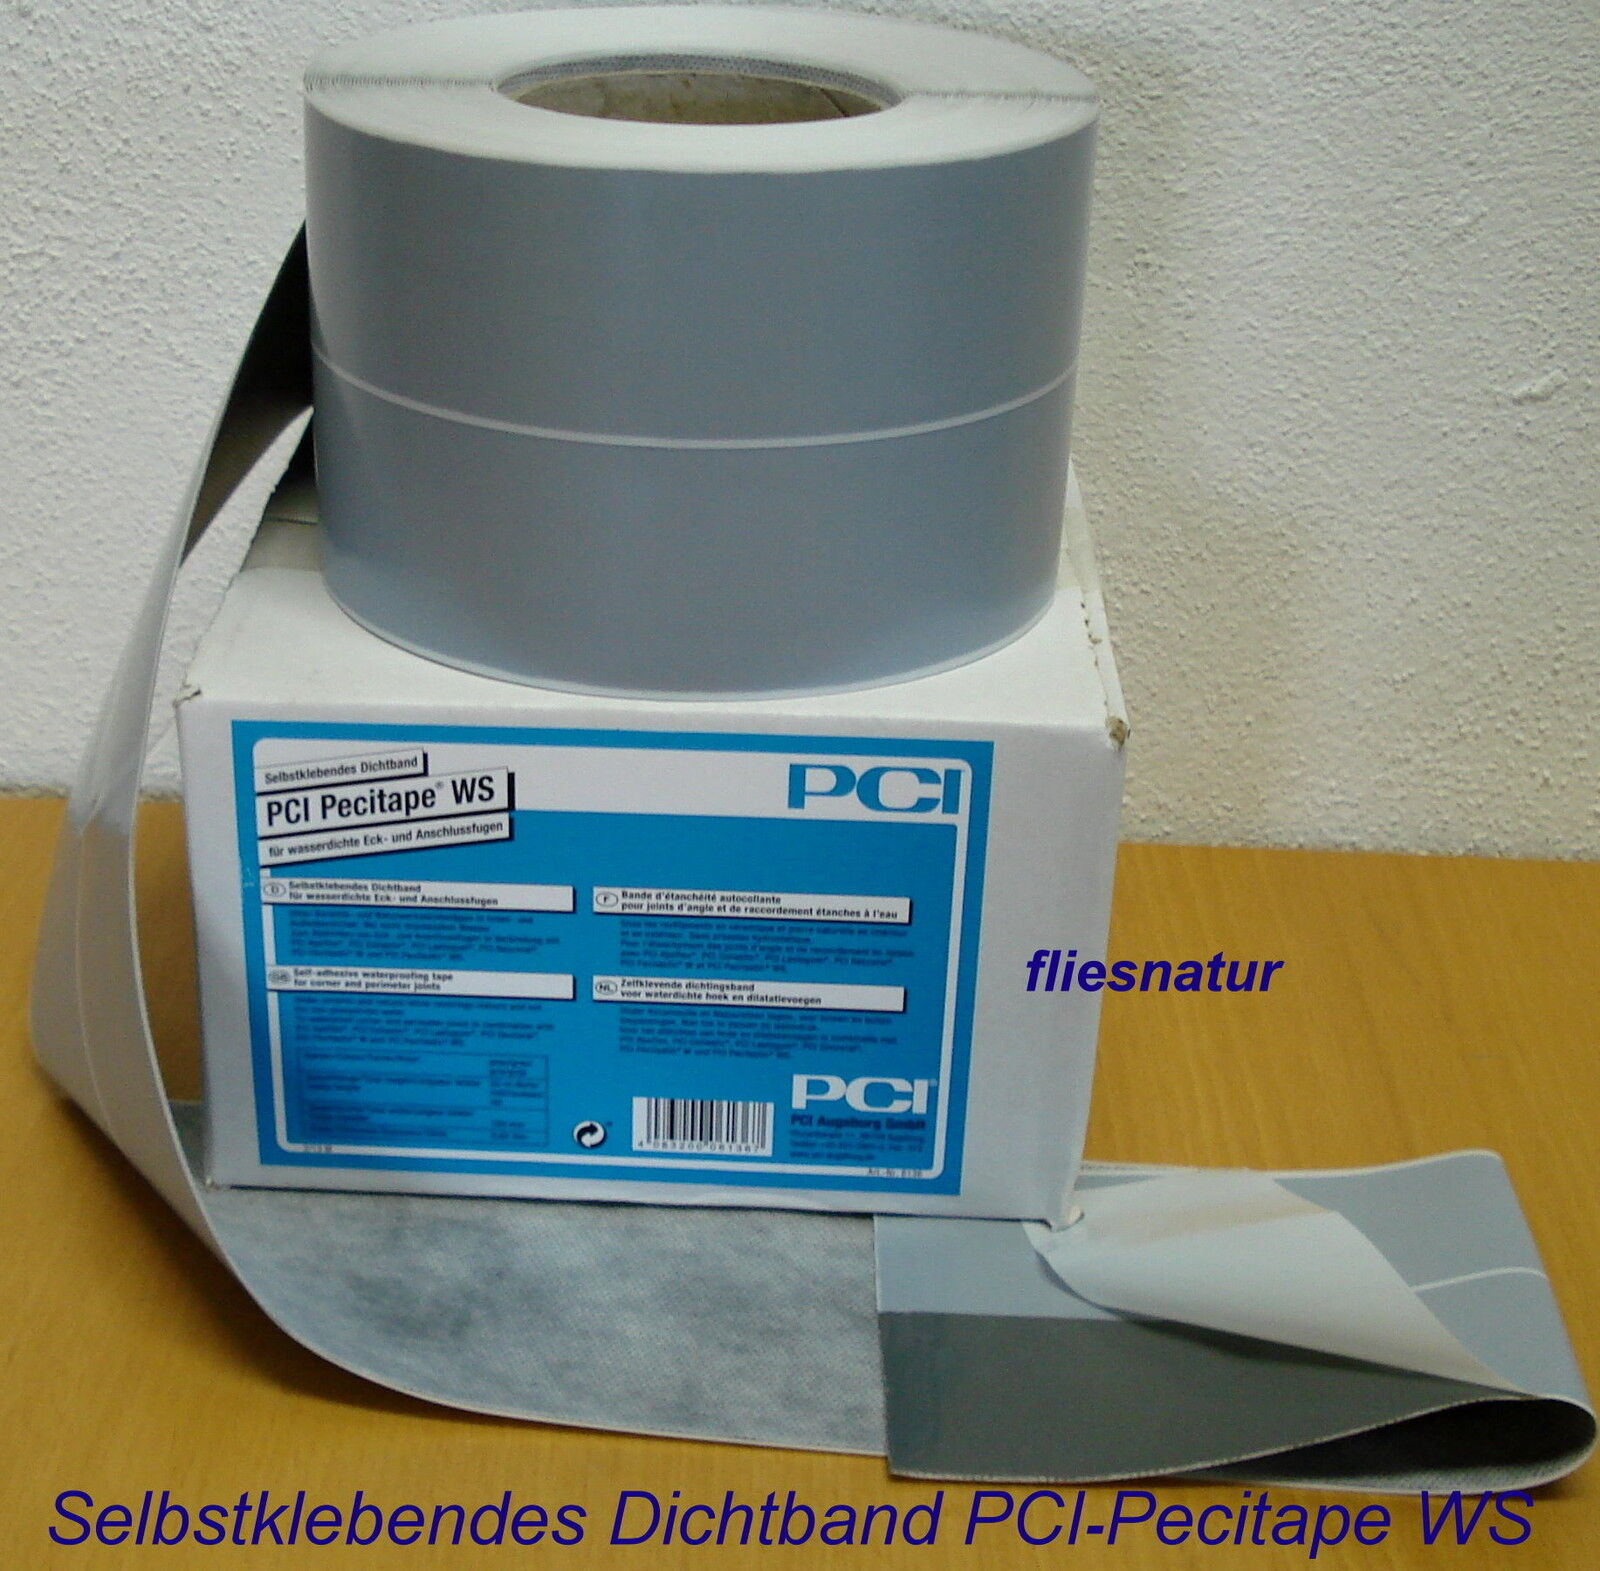 PCI Pecitape WS selbstklebendes Dichtband Rolle=20m Bithumenband Abdichtband